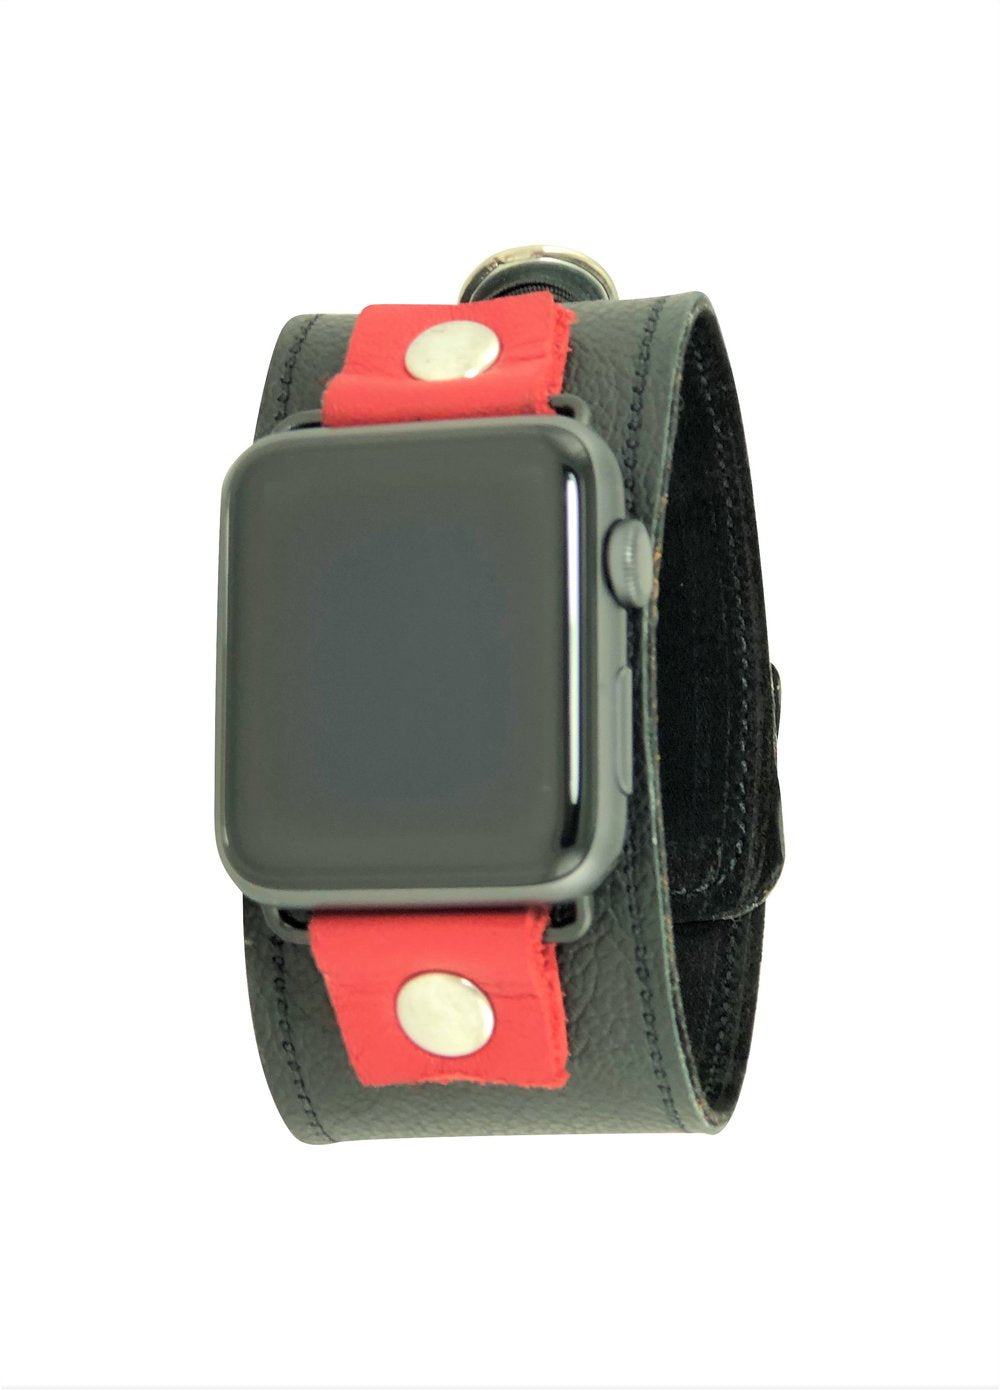 NAN Smart Watch Band - Black & Red